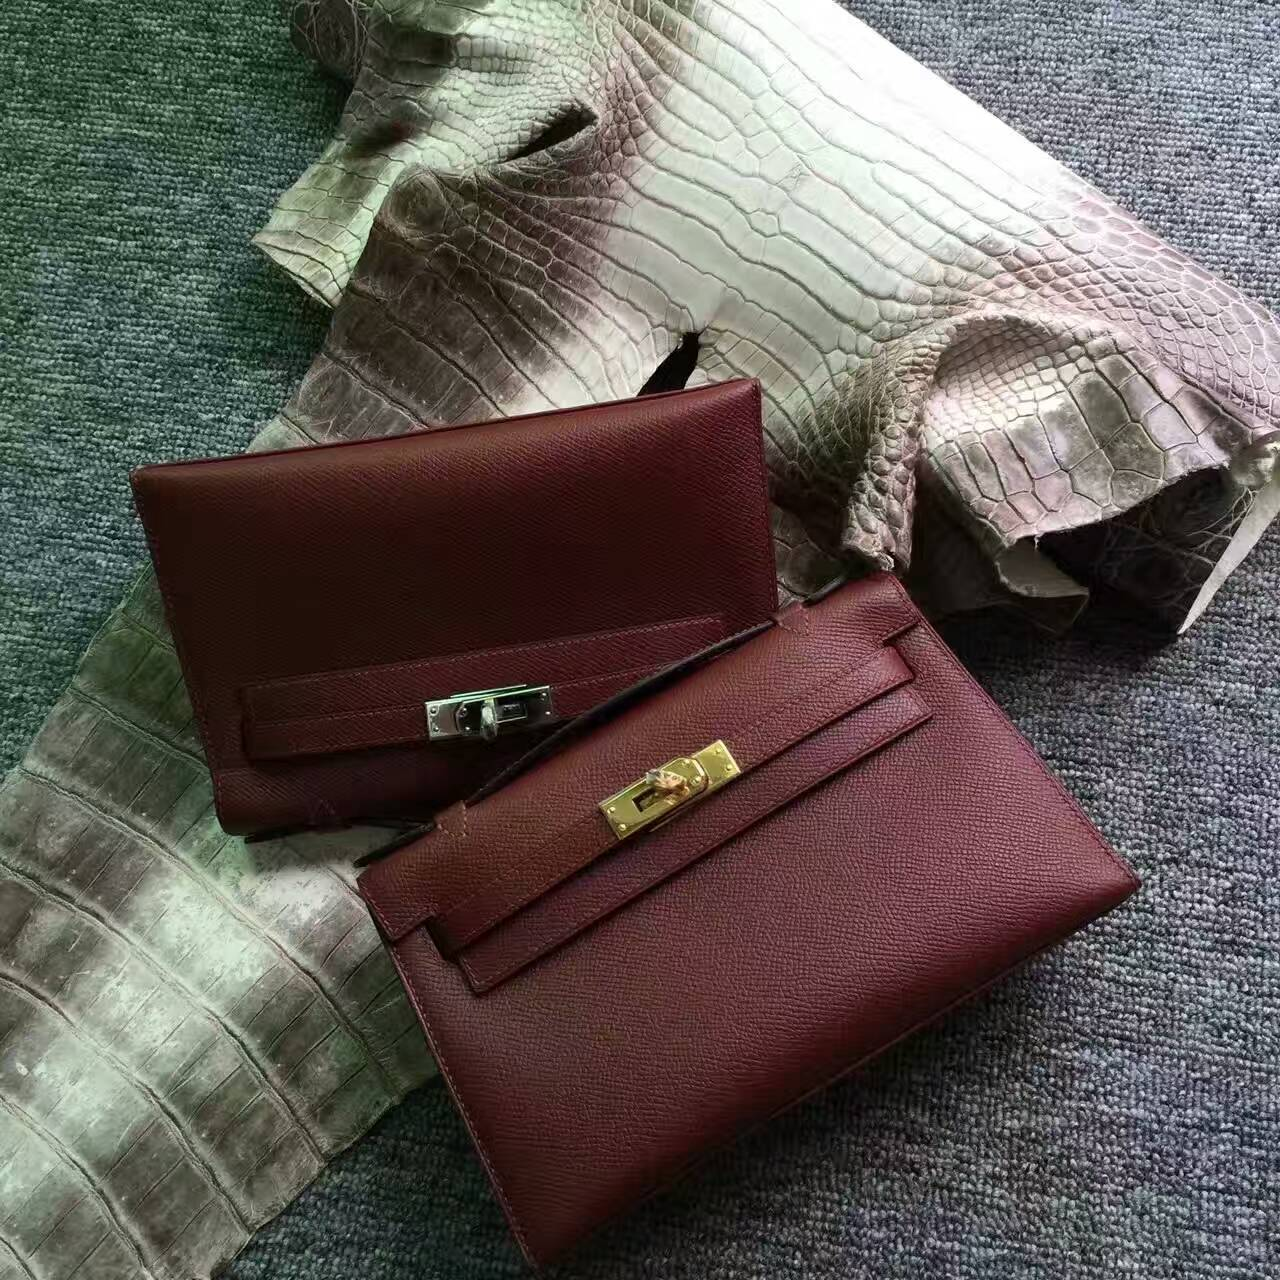 Discount Hermes Minikelly Pochette 22CM in CK55 Rouge Hermes Epsom Leather